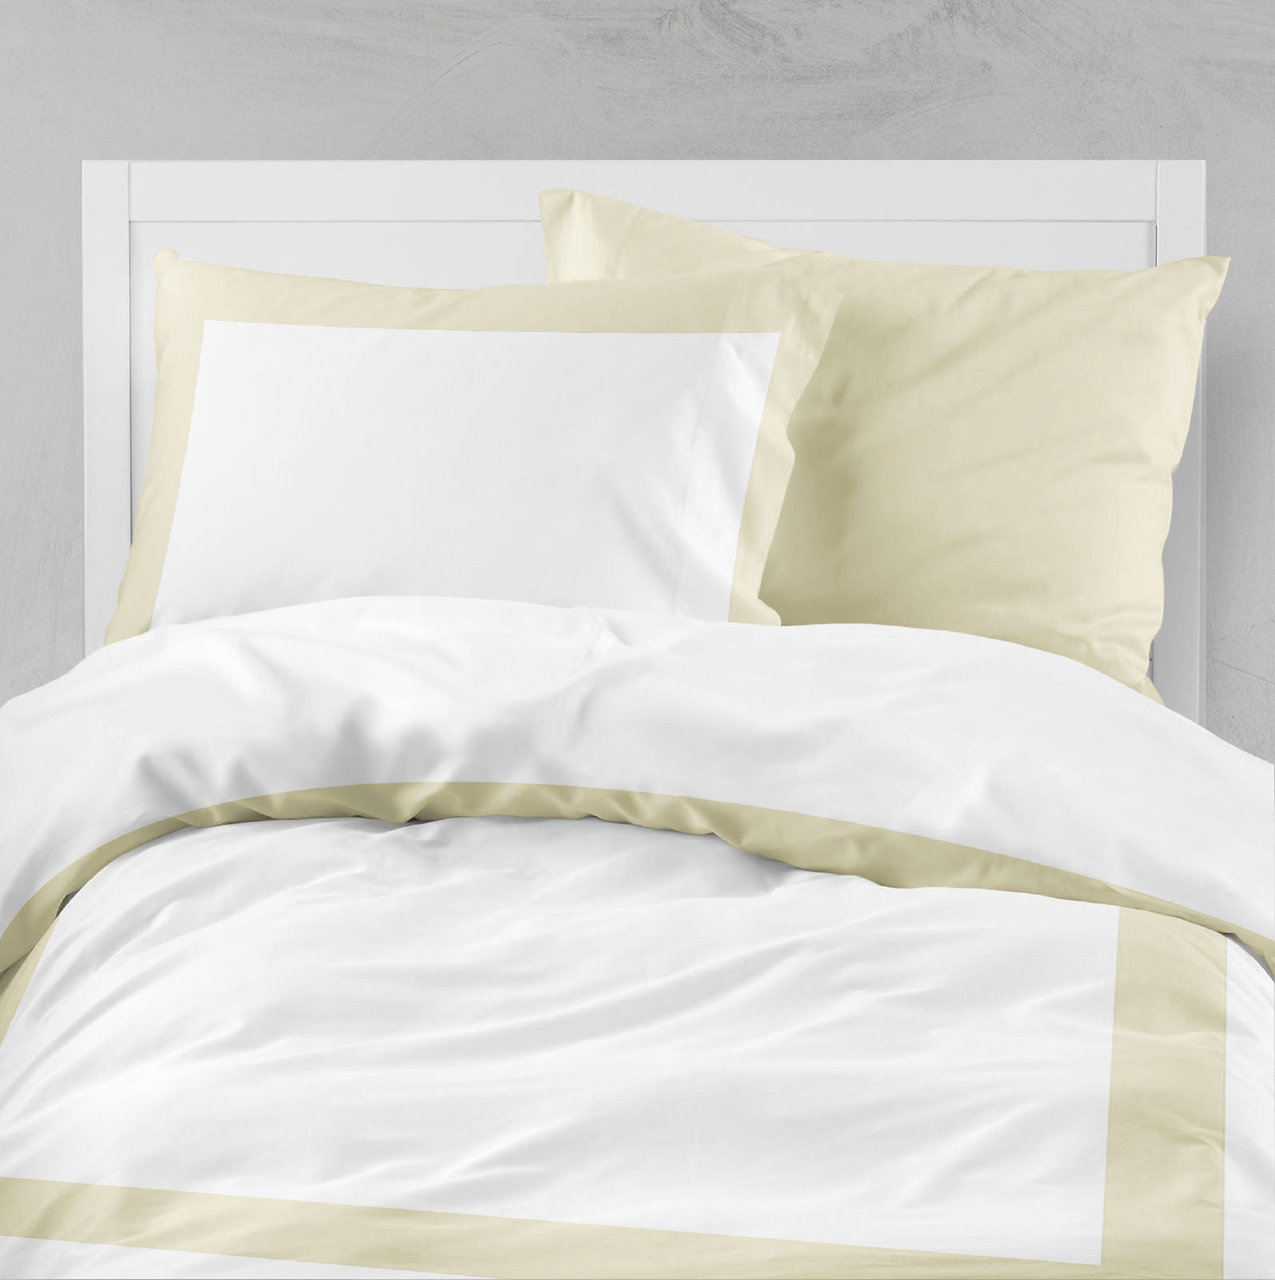 SHAM PAIR QUEEN SOLID COLOR IVORY